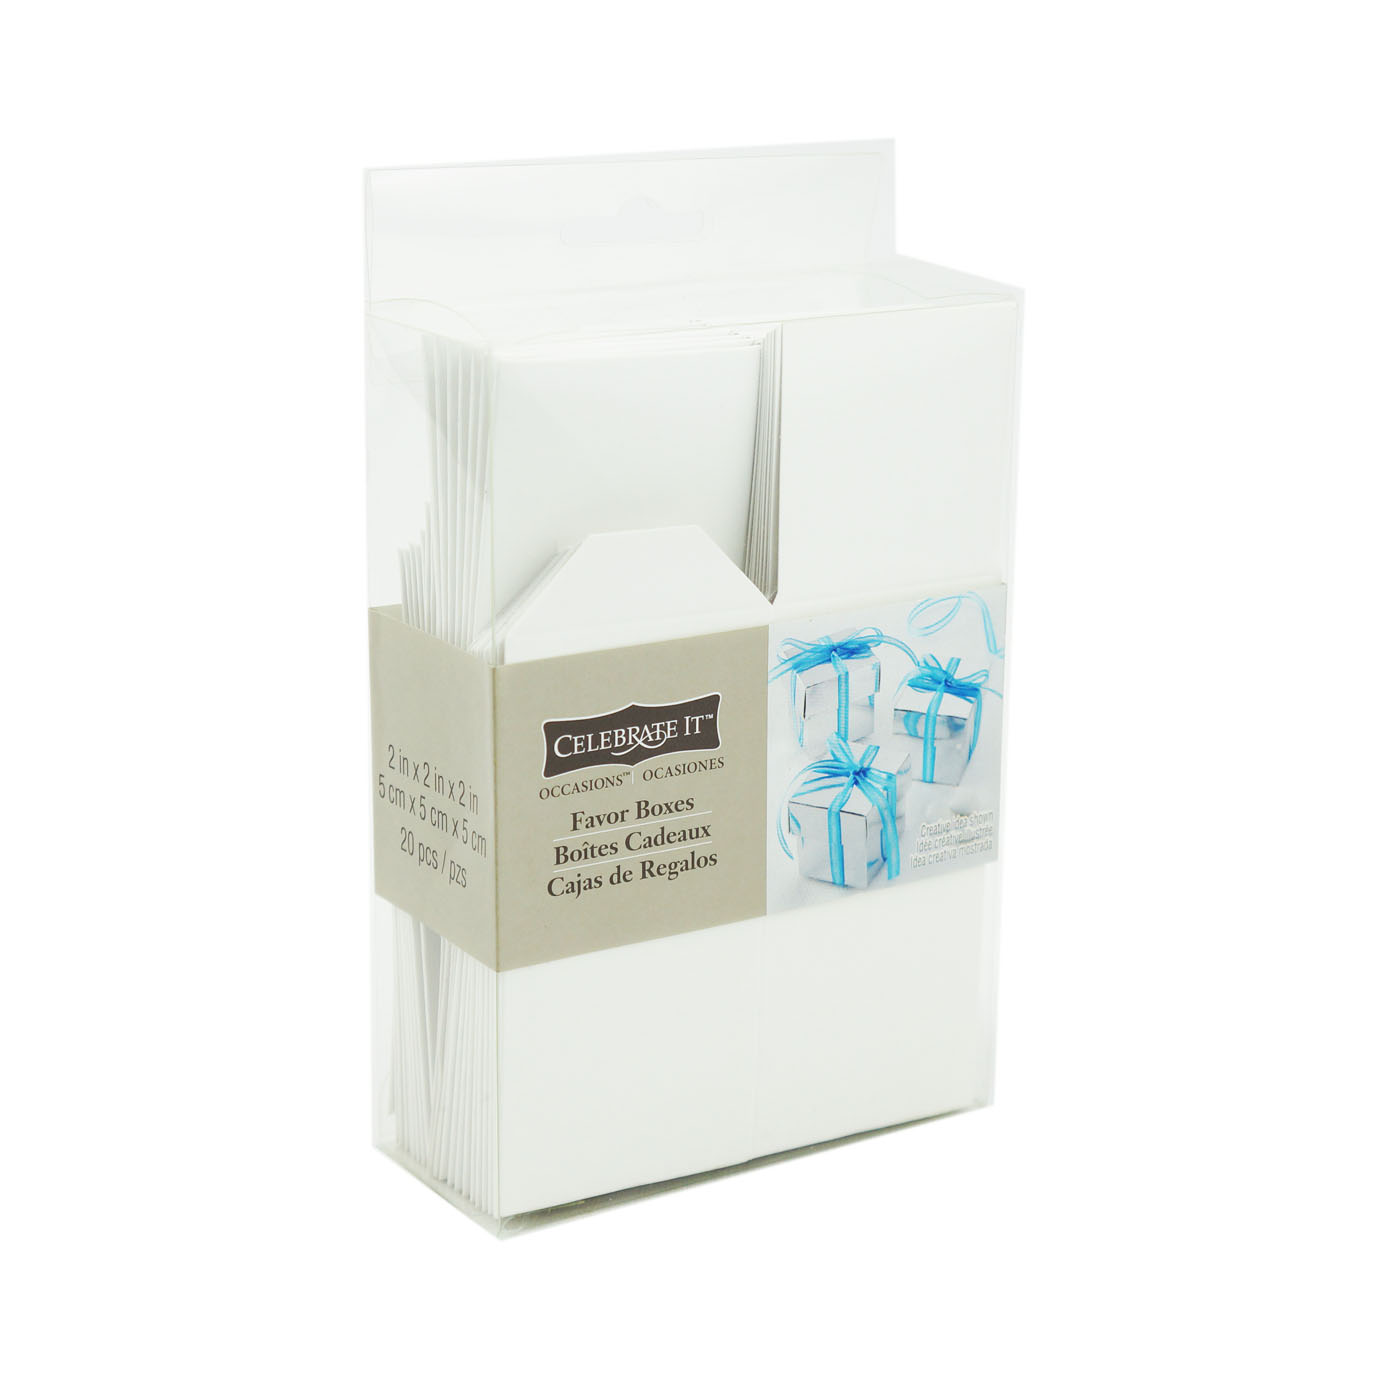 Celebrate It Occasions Favor Boxes With Lids Instructions : Celebrate it occasions favor boxes white